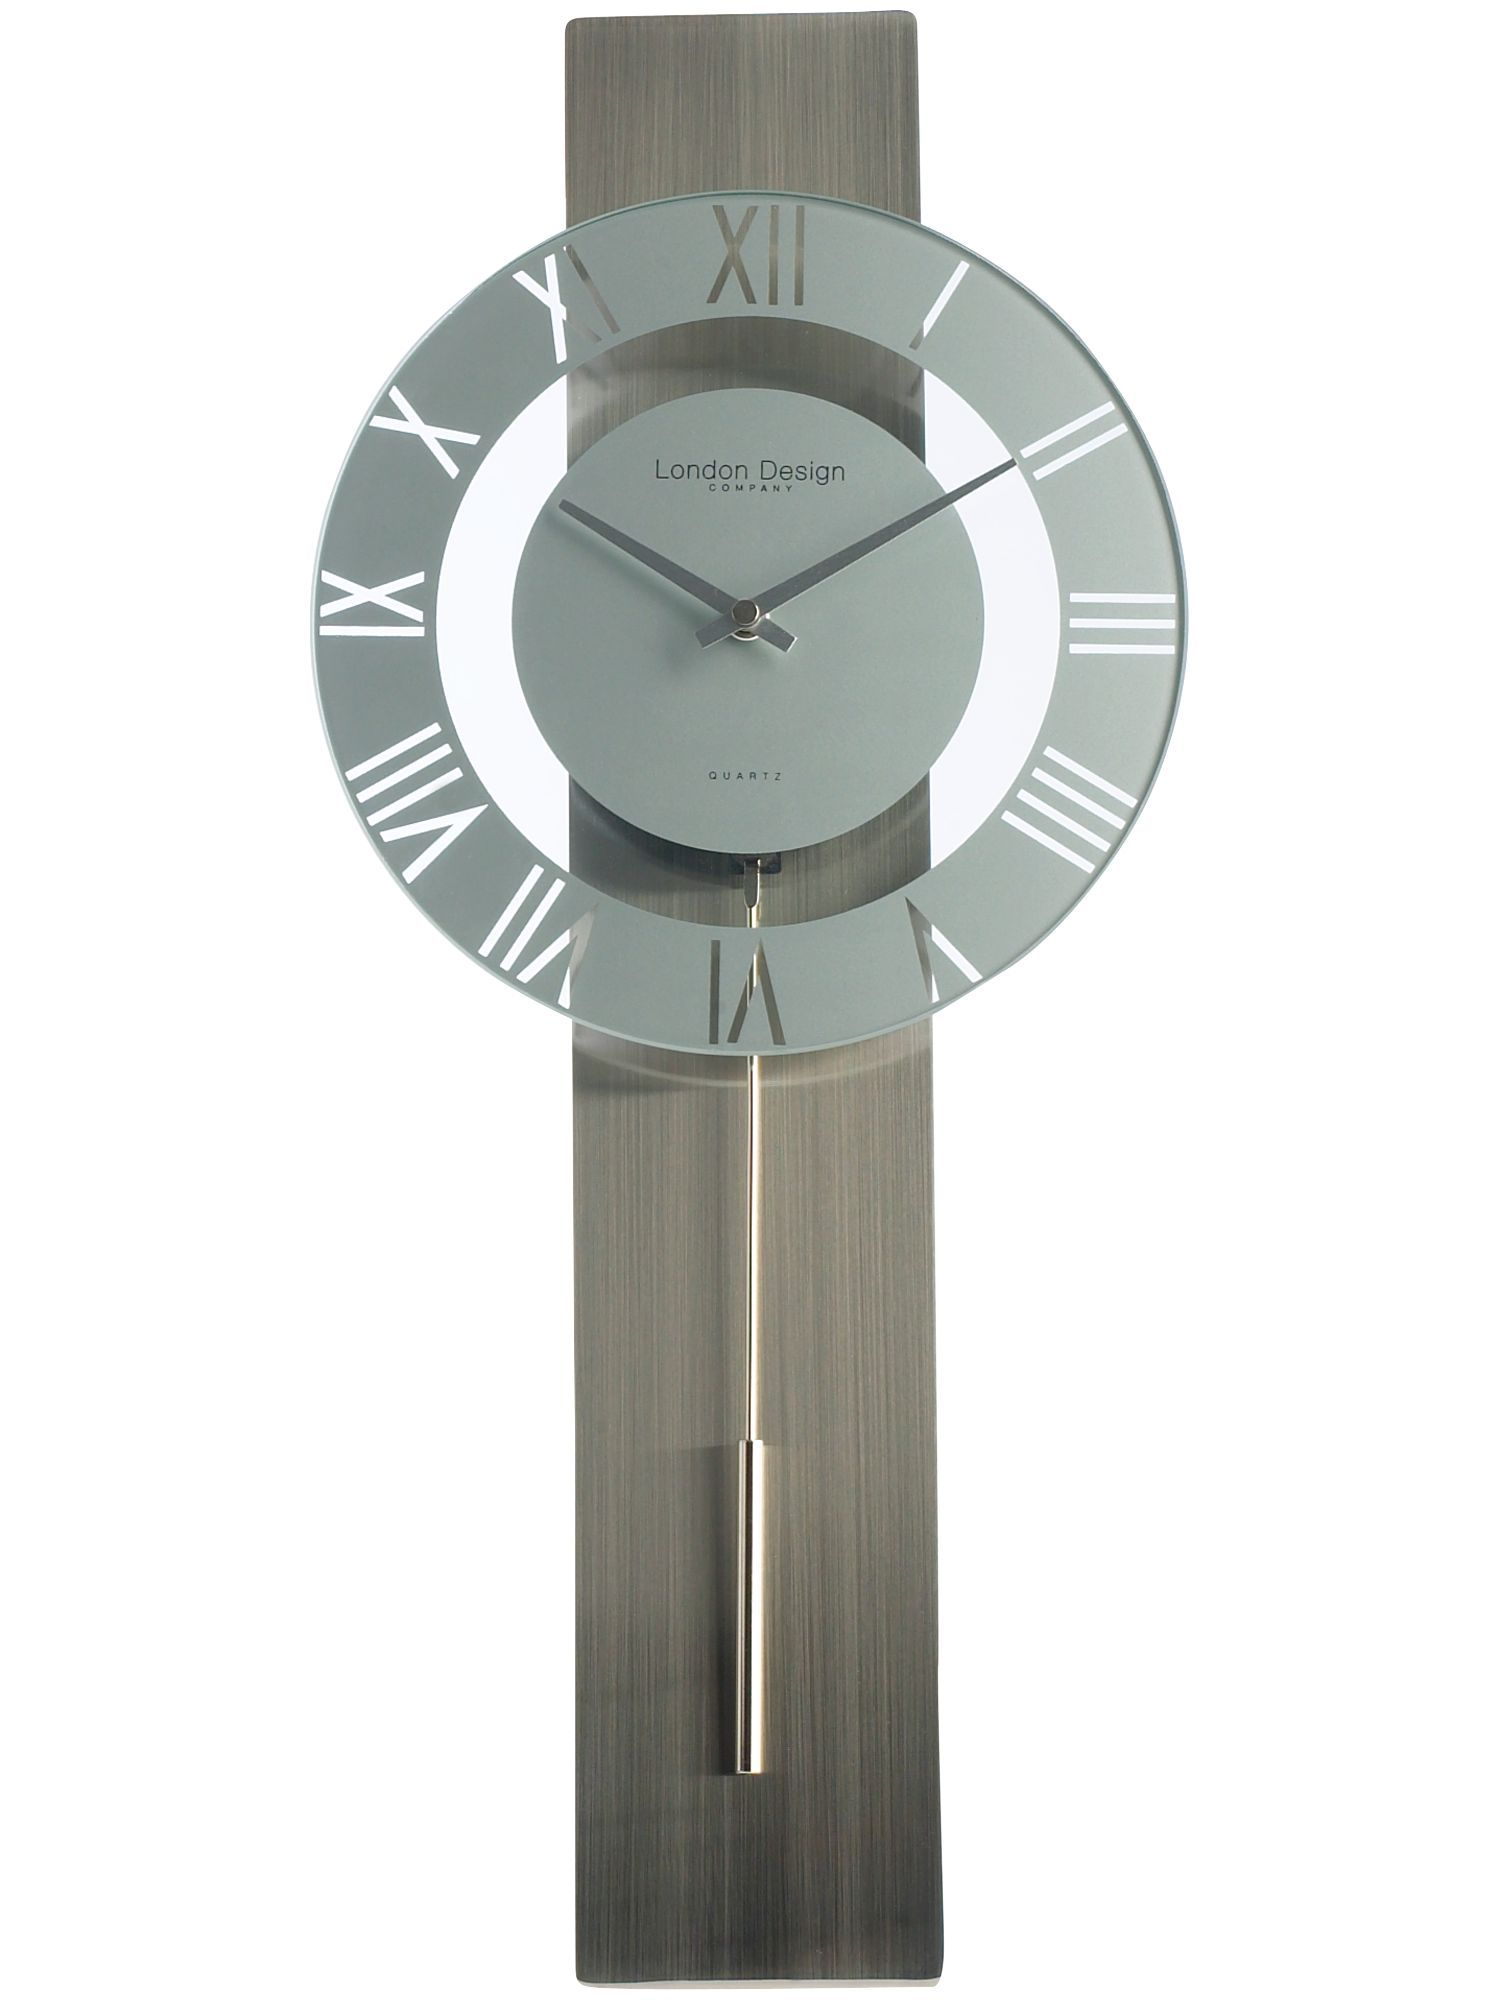 Pendulum Wall Clocks Buy Online Choice Image Home Wall